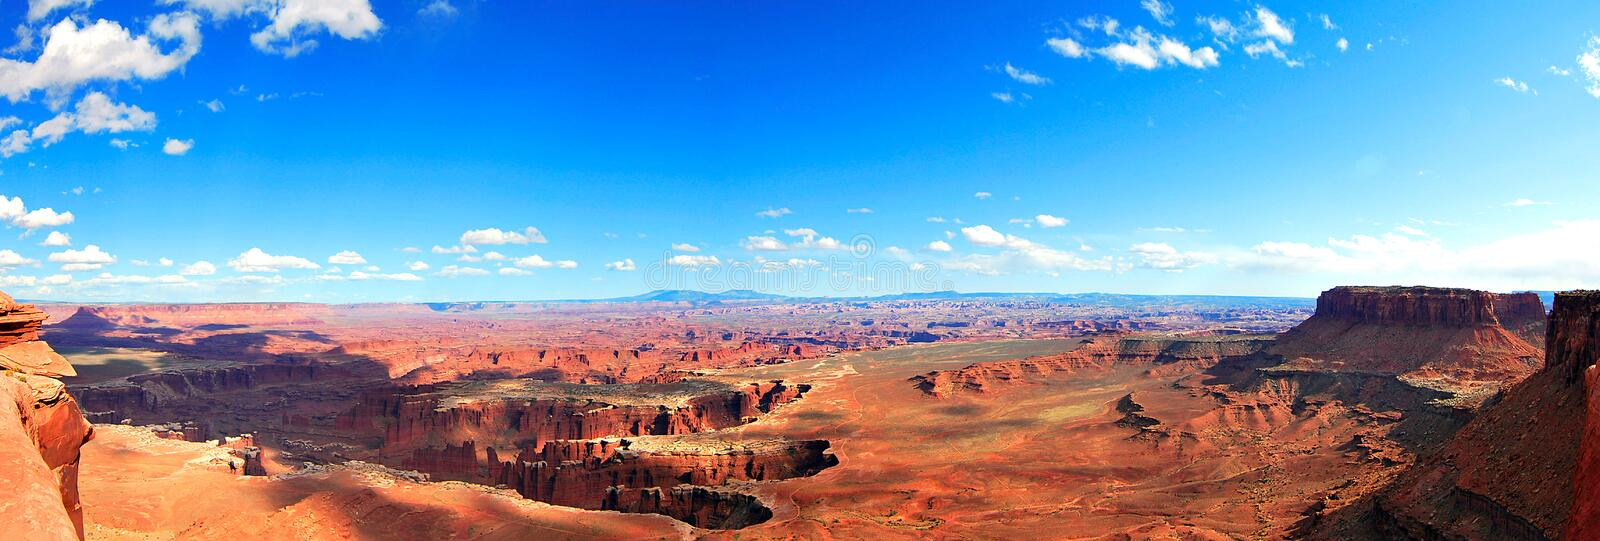 Canyonland Nationalpark stockfotografie